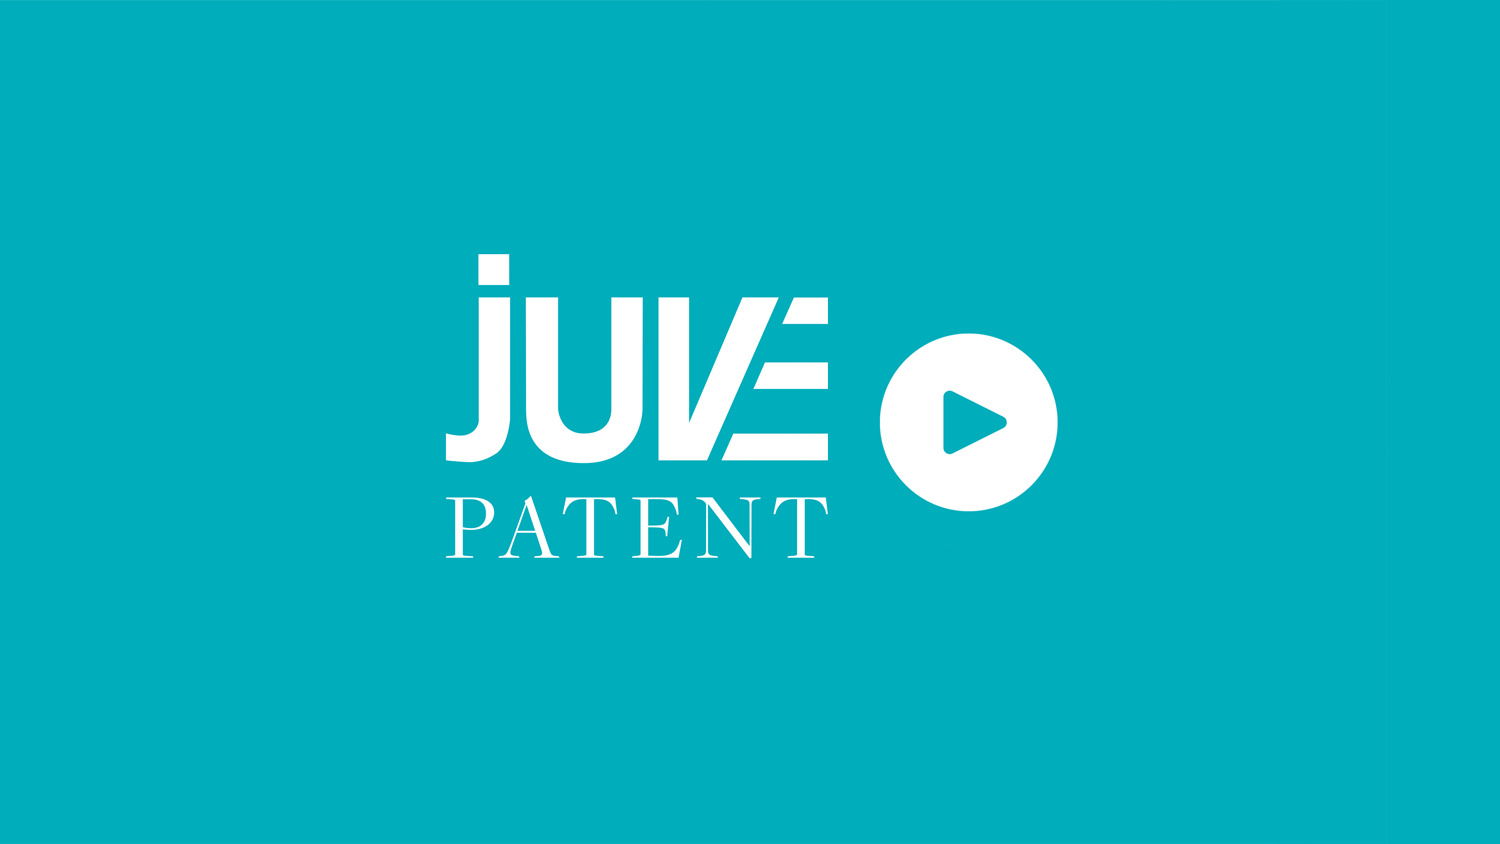 New video: How the German patent market developed in 2020